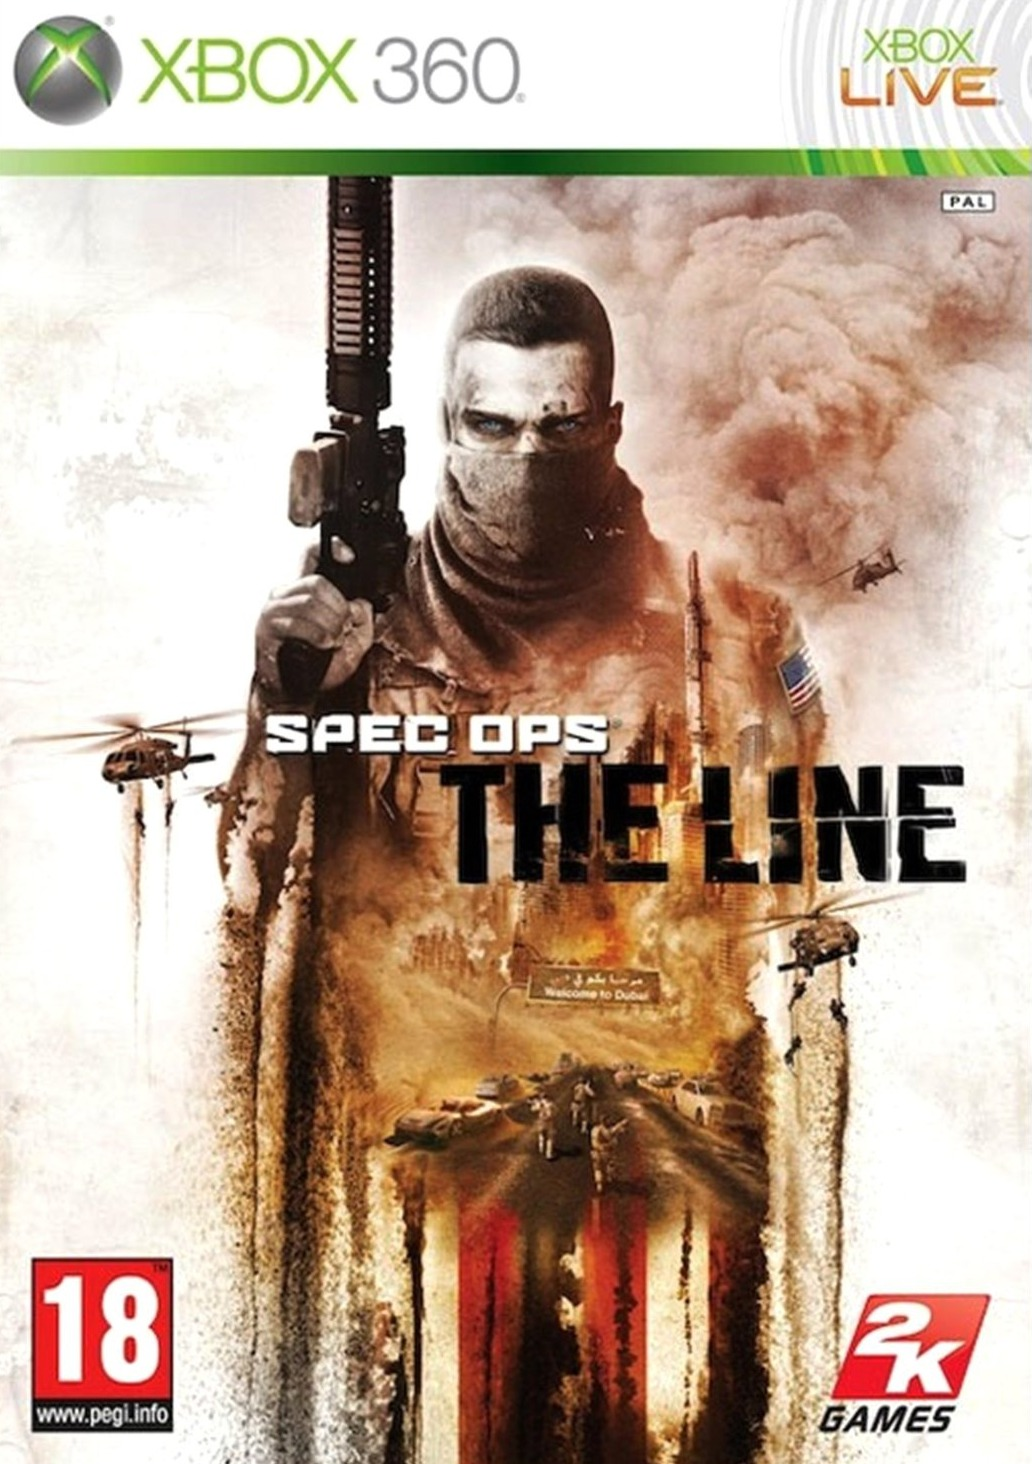 Spec Ops The Line XBOX360 [FR] (exclue) [MULTI]